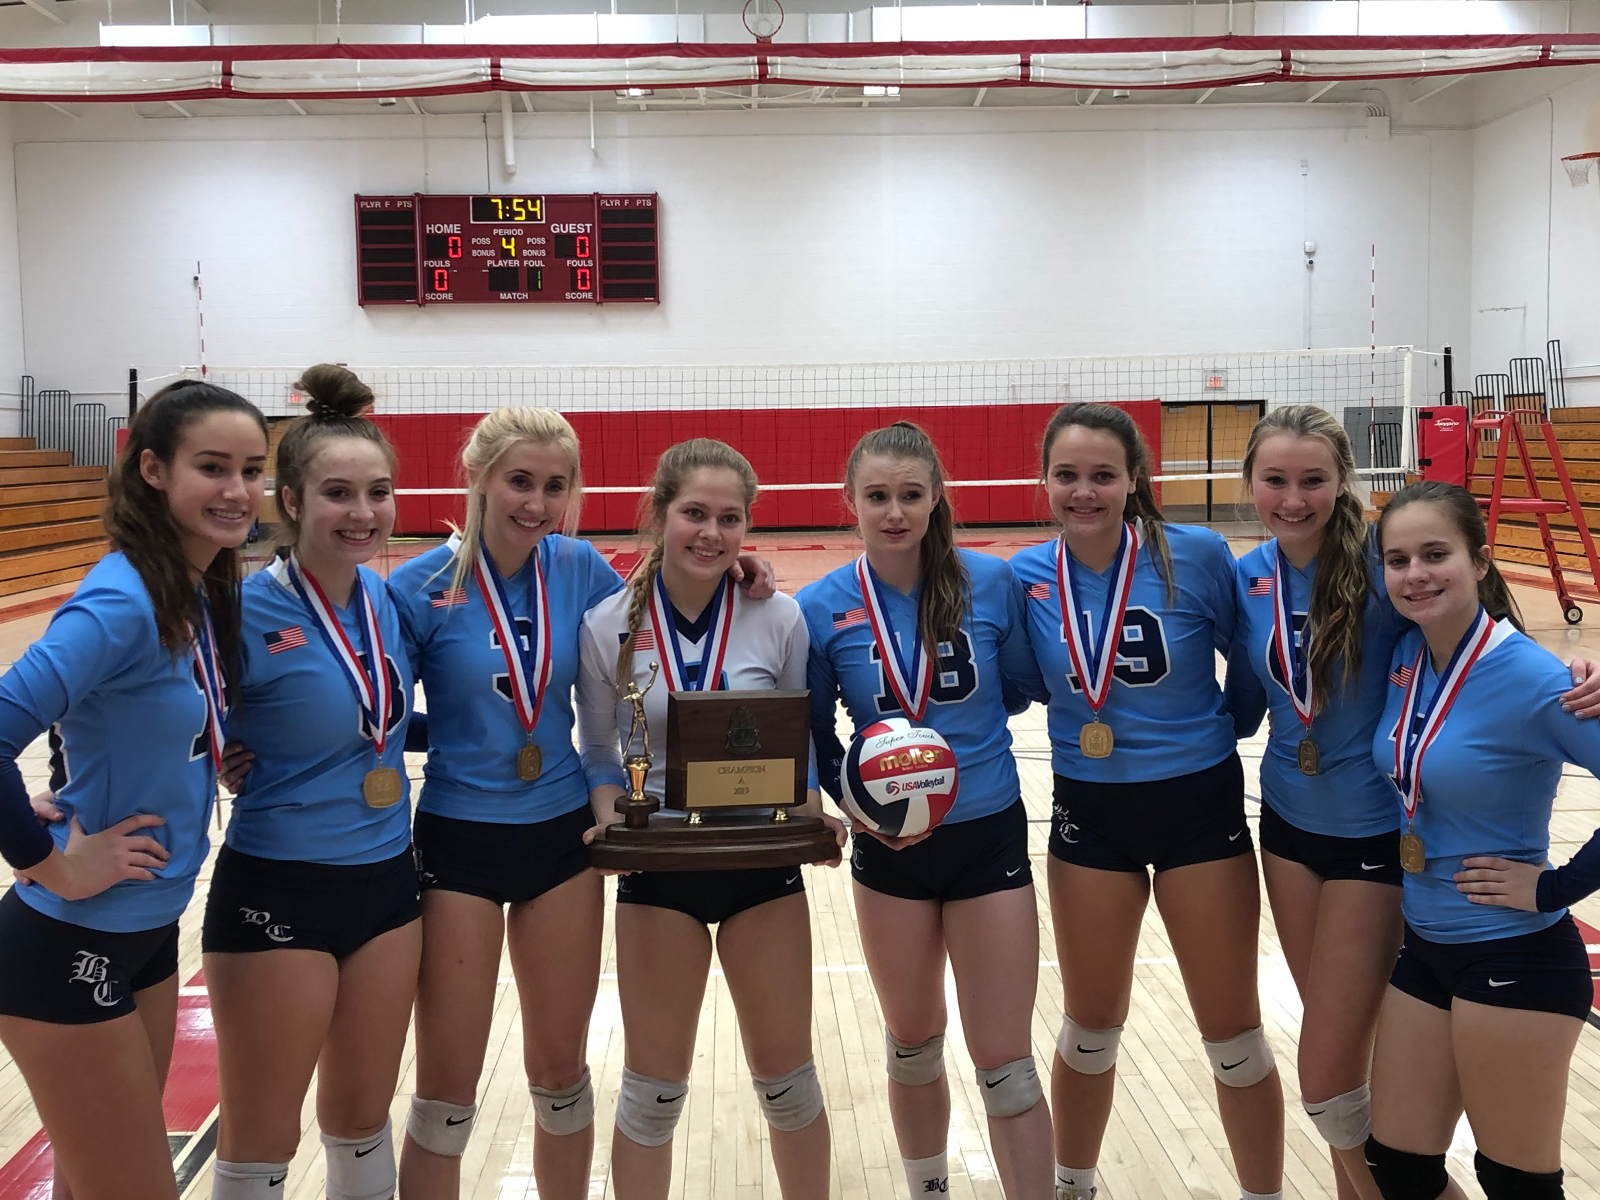 WPIAL Class A ALL-WPIAL VOLLEYBALL TEAM